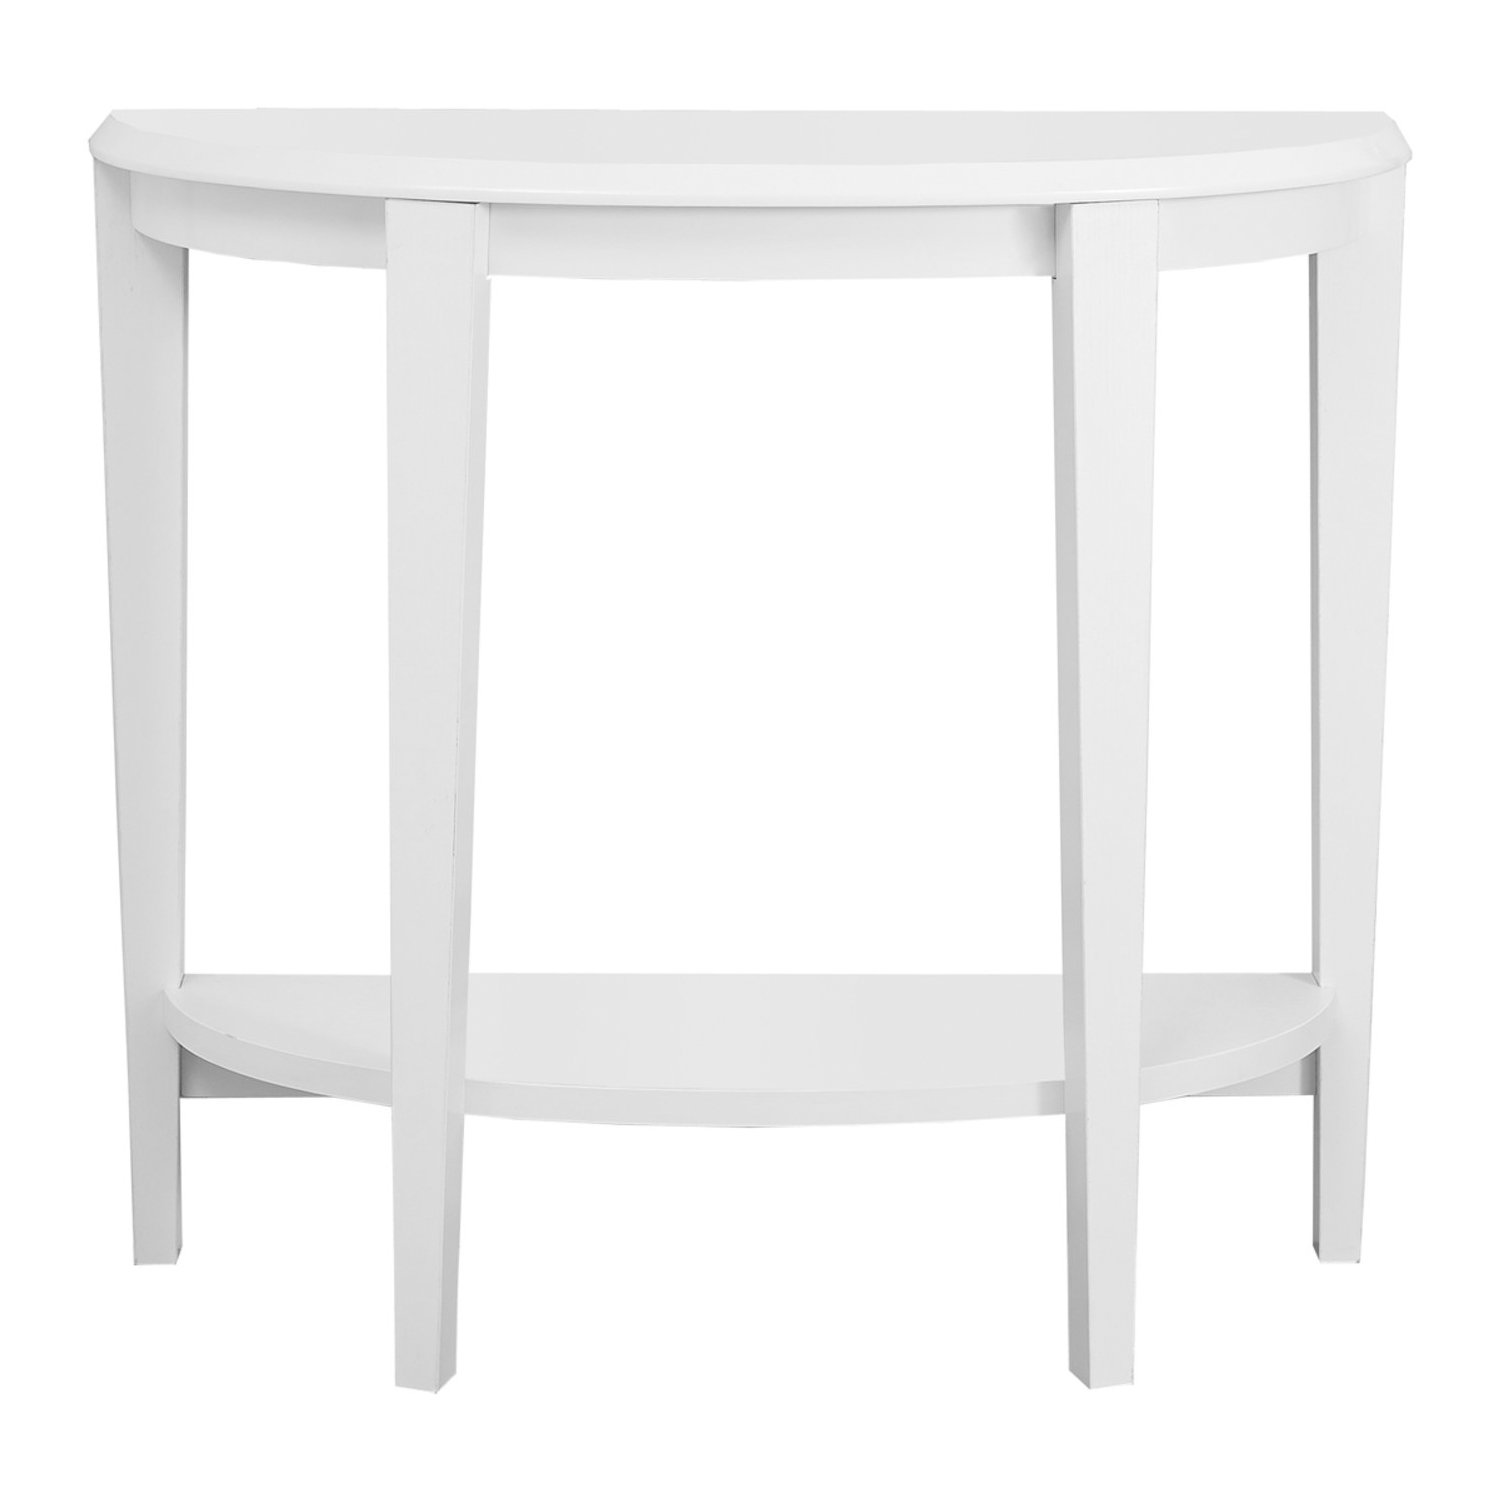 monarch specialties white hall console accent table inch kitchen dining cherry wood night armchairs for living room black lamp small folding bedside lights under ikea slim pottery